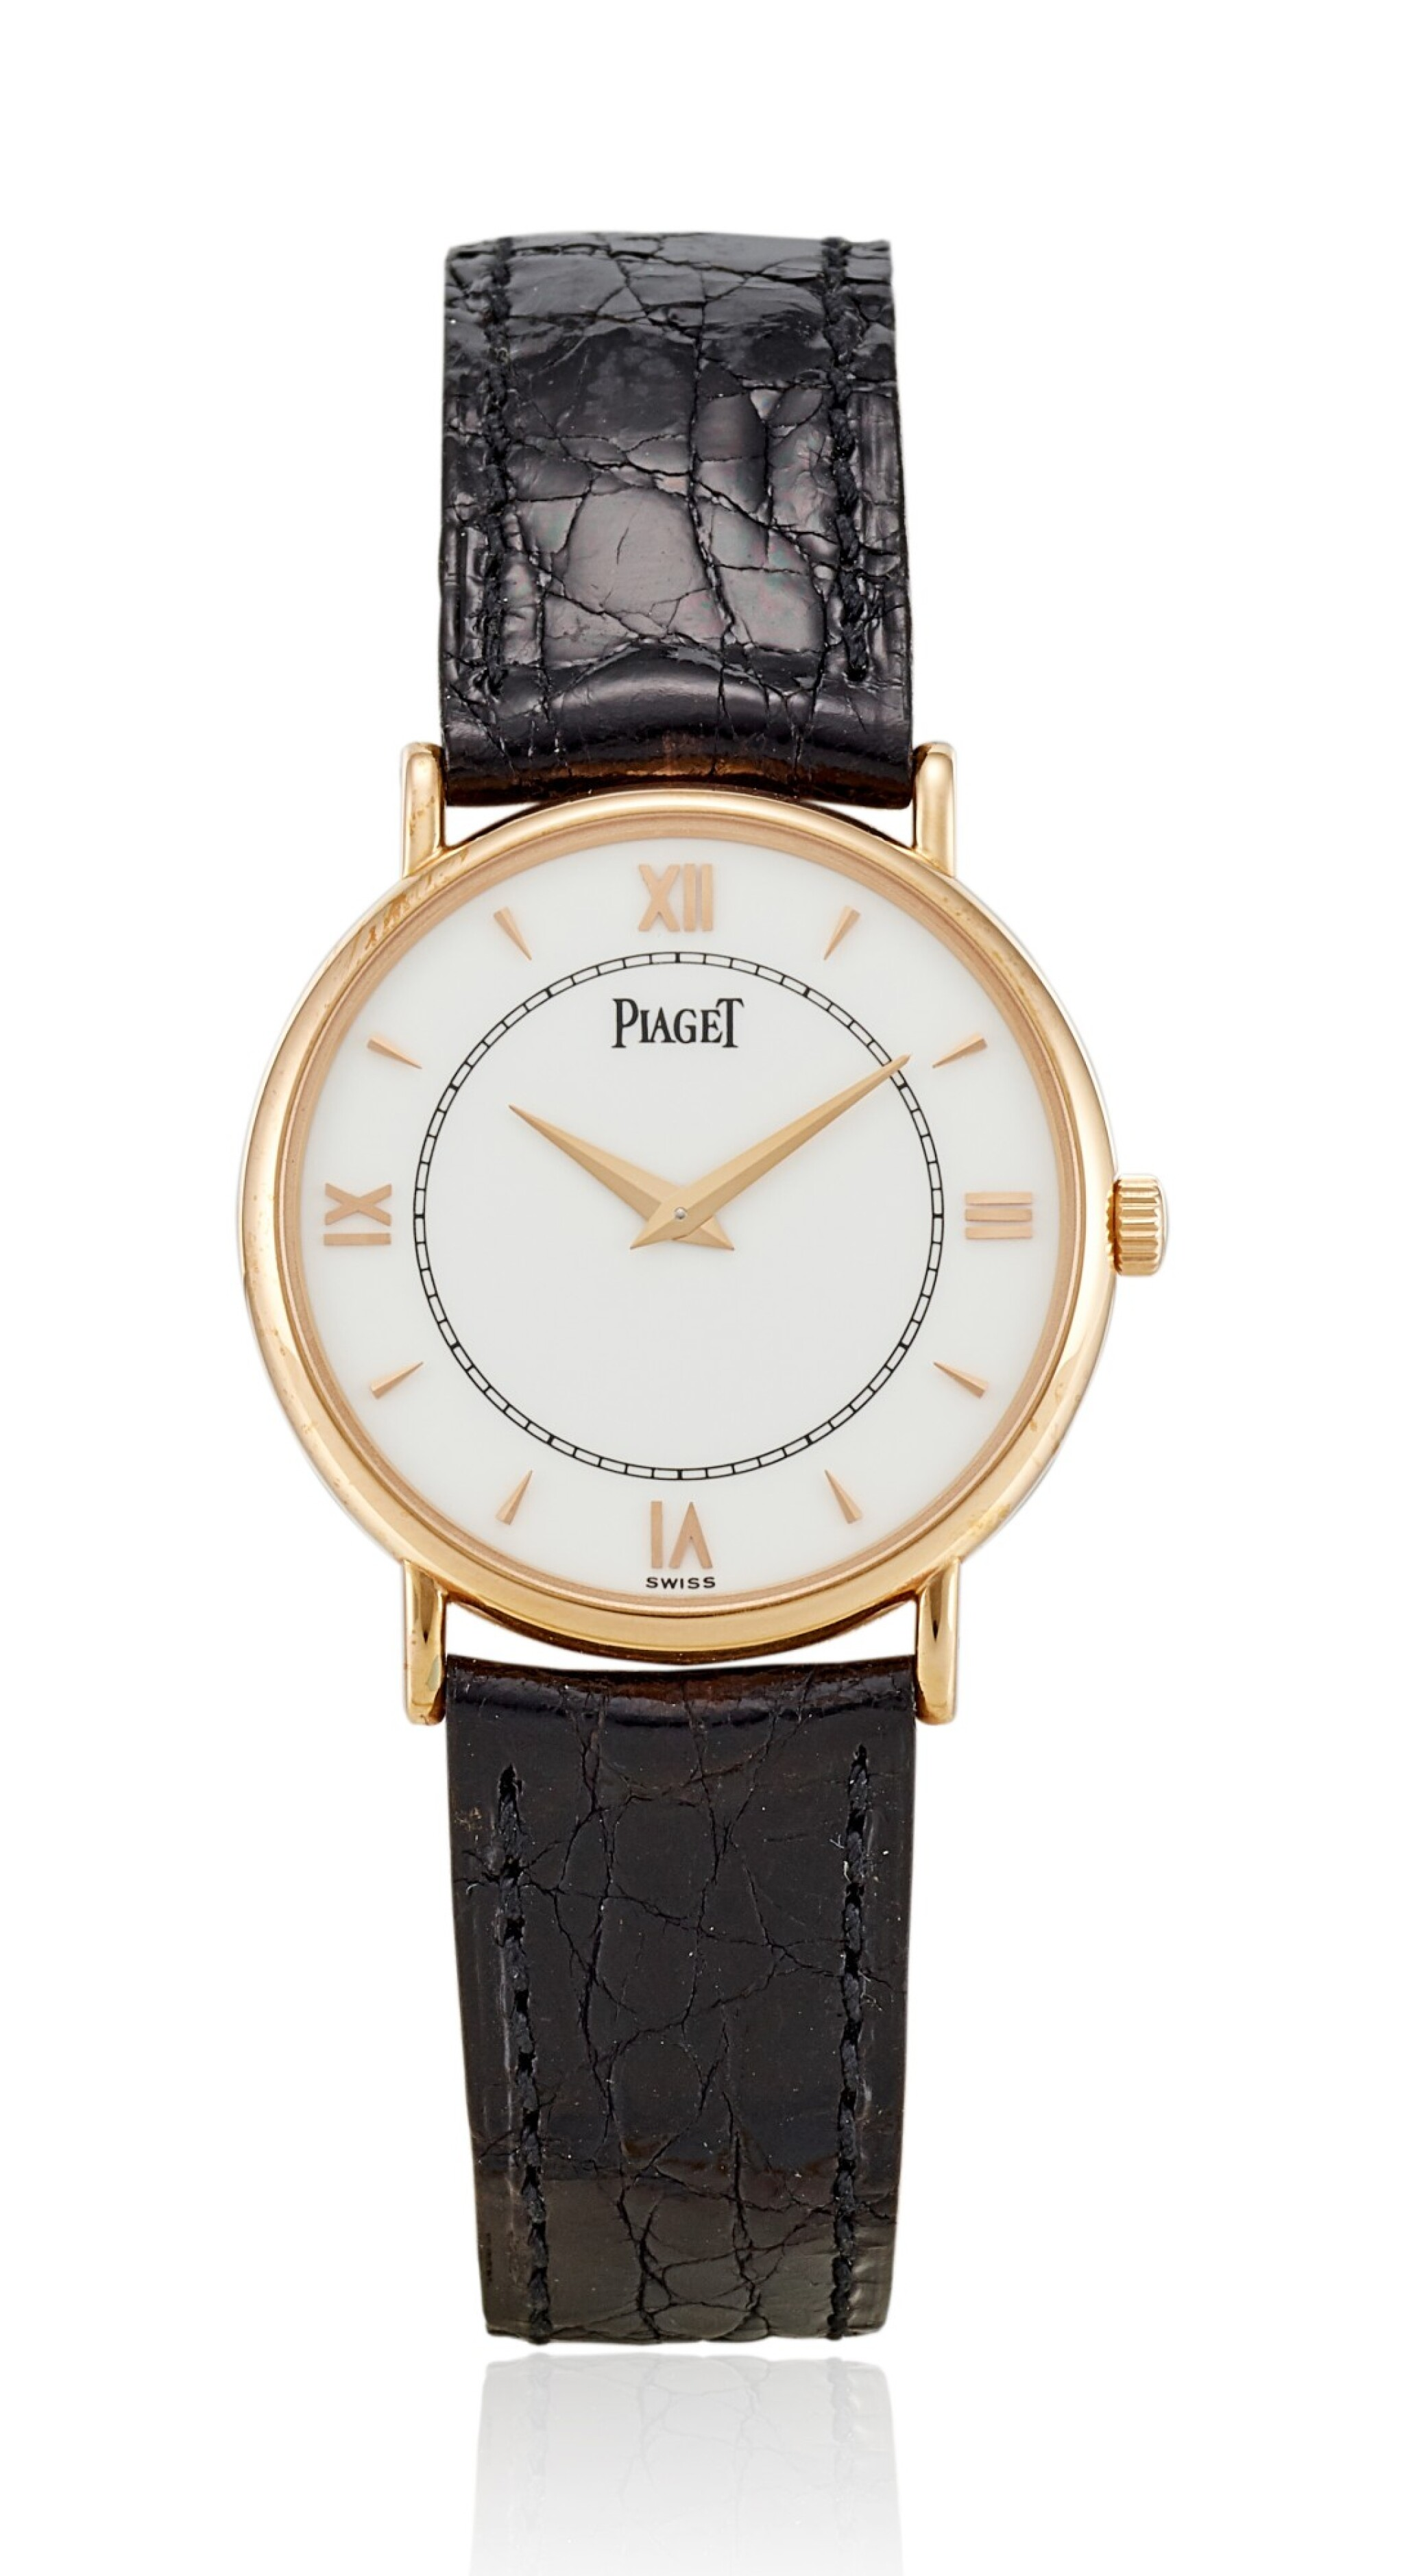 View full screen - View 1 of Lot 8269. PIAGET | REFERENCE 8025N, A LIMITED EDITION PINK GOLD WRISTWATCH, MADE TO COMMEMORATE THE 120TH ANNIVERSARY OF PIAGET, CIRCA 1997.